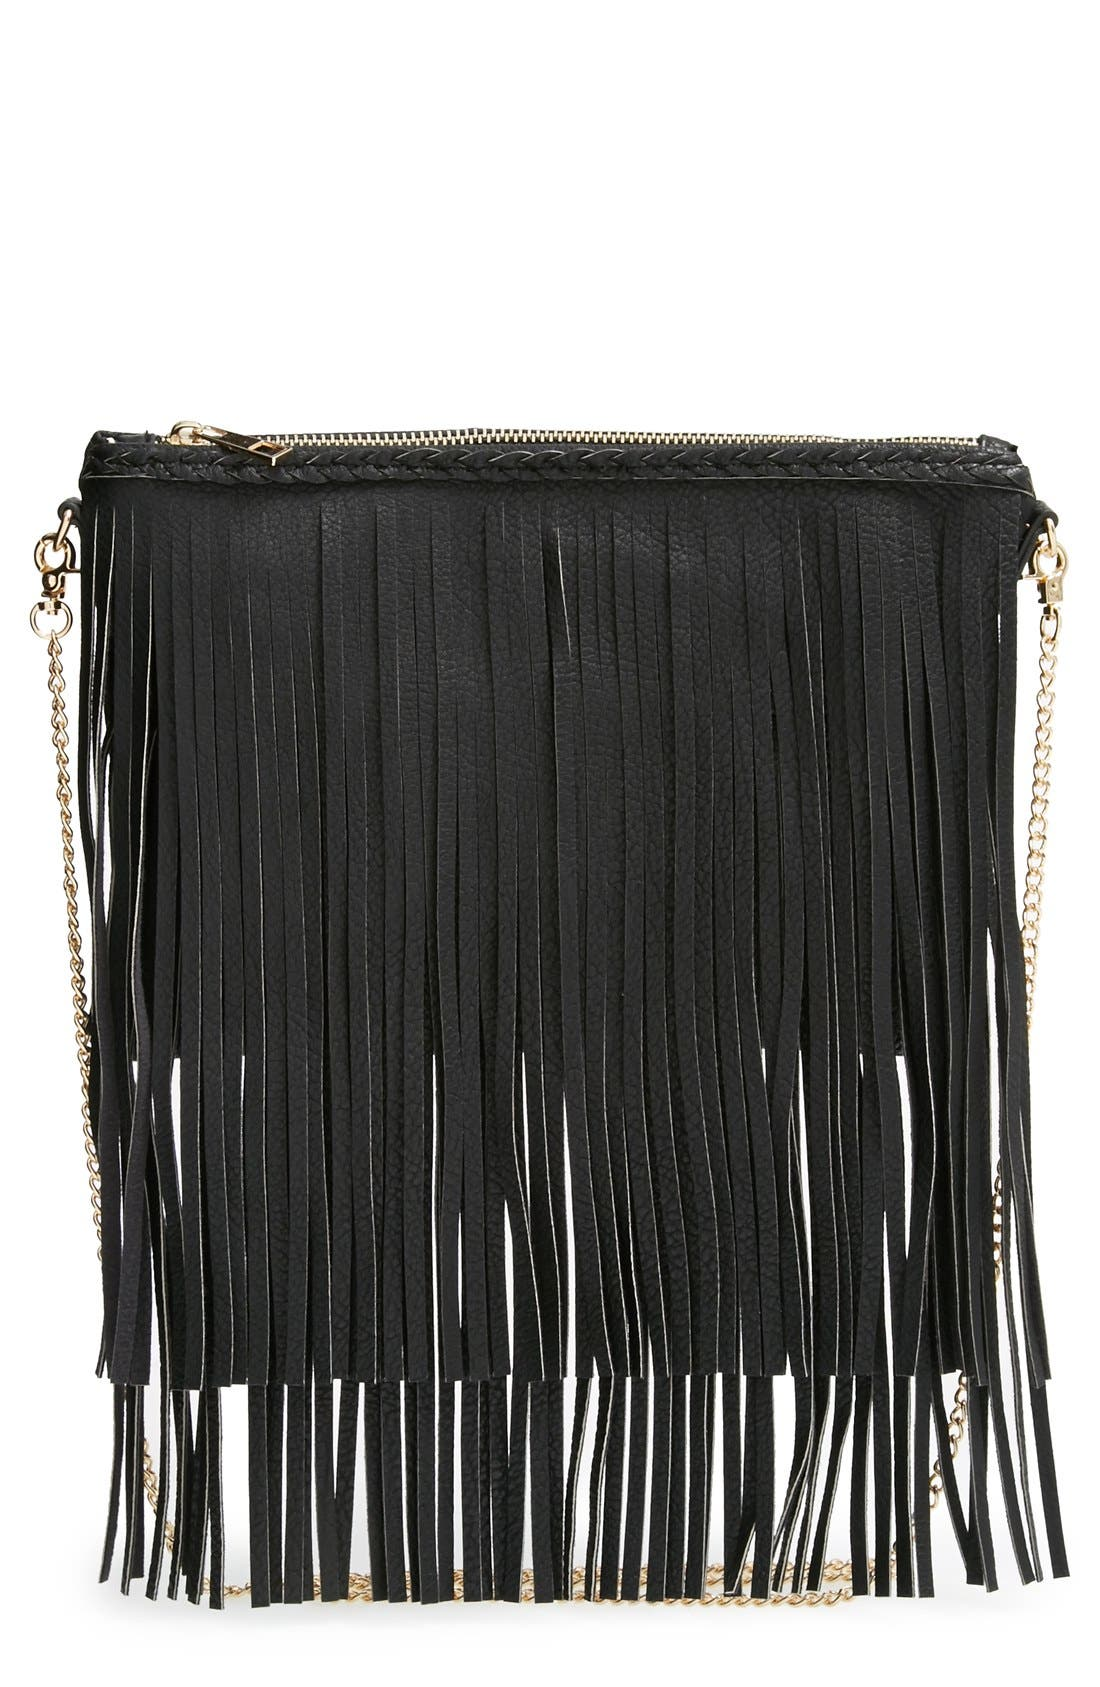 'Rose' Fringe Faux Leather Convertible Crossbody Bag,                         Main,                         color, 001